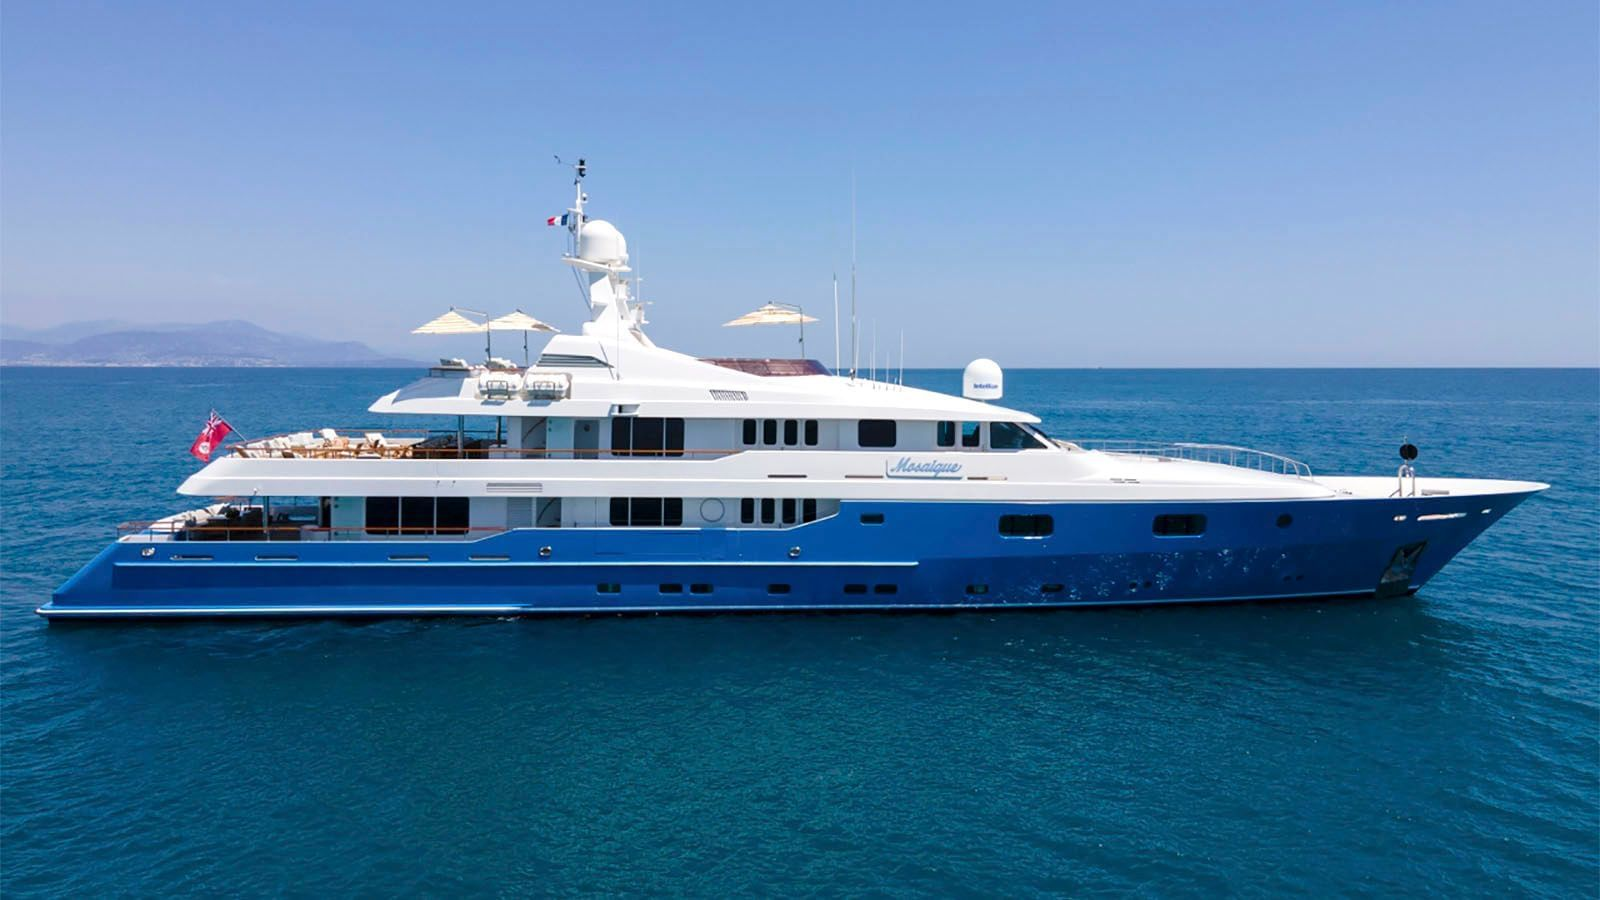 More than 100 Luxury Yachts for Sale / Mega Yachts for Sale - IYC